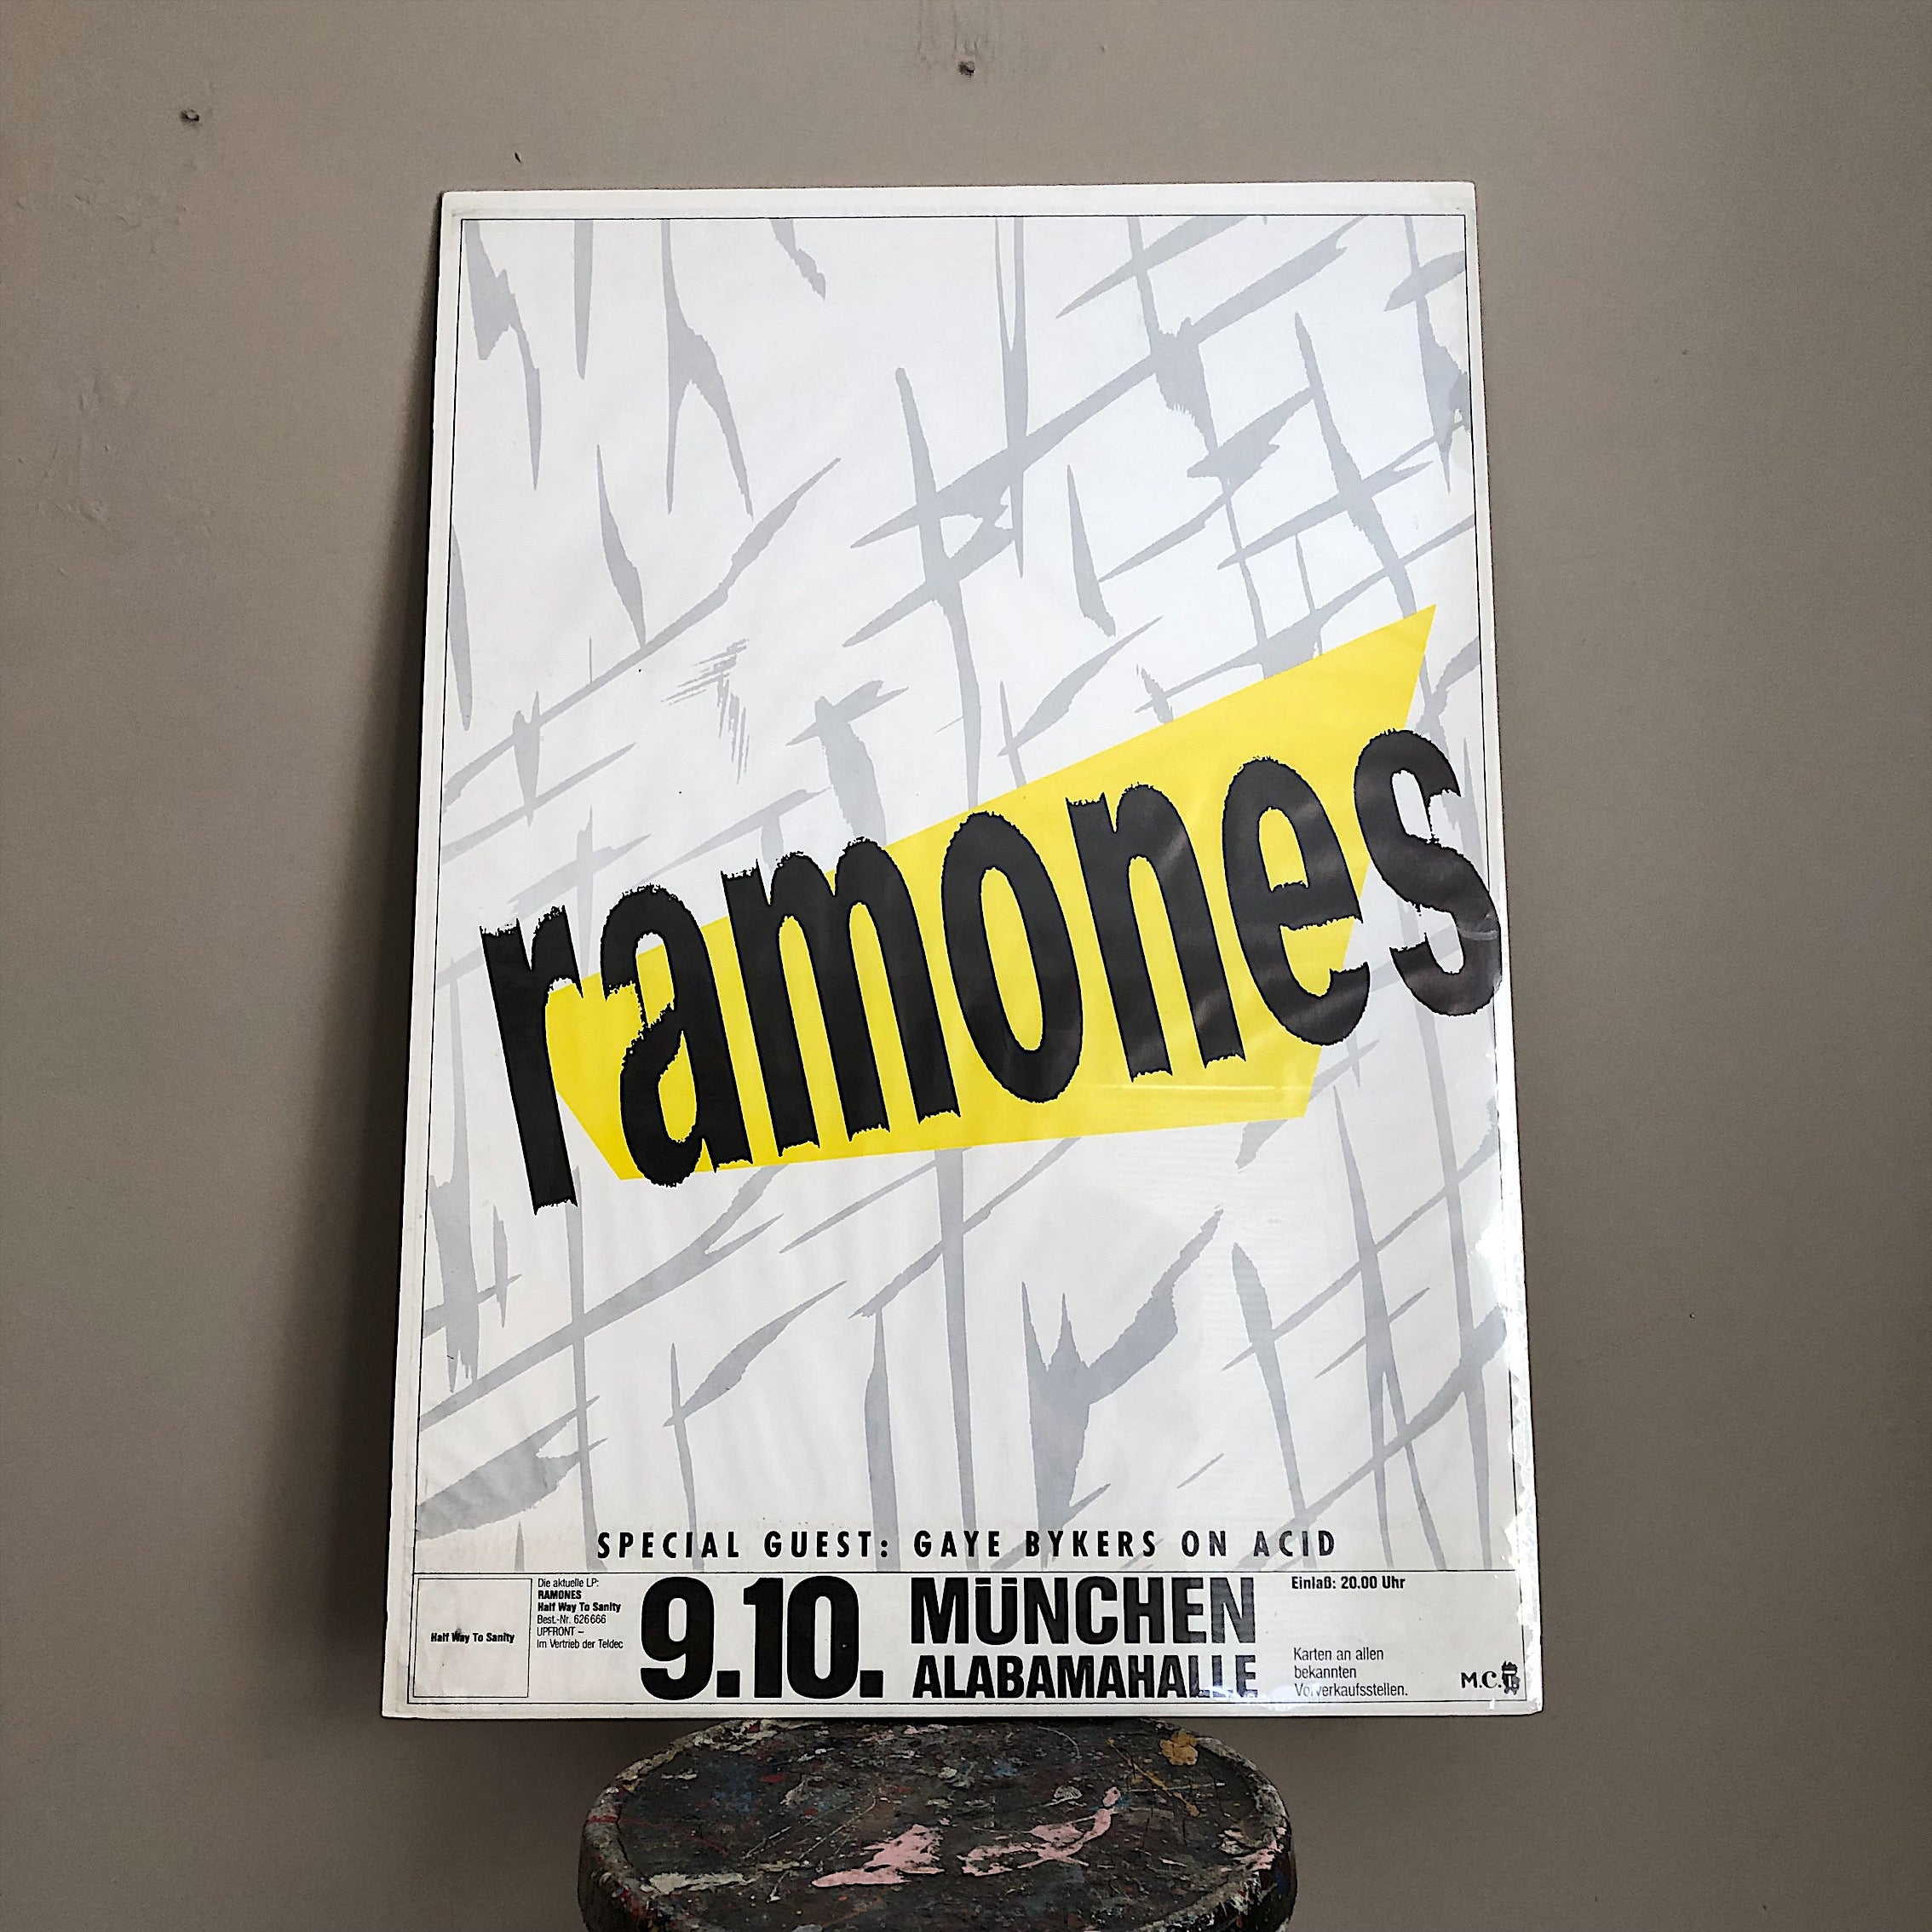 Rare Ramones Concert Poster from Munich Germany 1987 - Punk Rock Memorabilia - Rock Posters - Half Way to Sanity